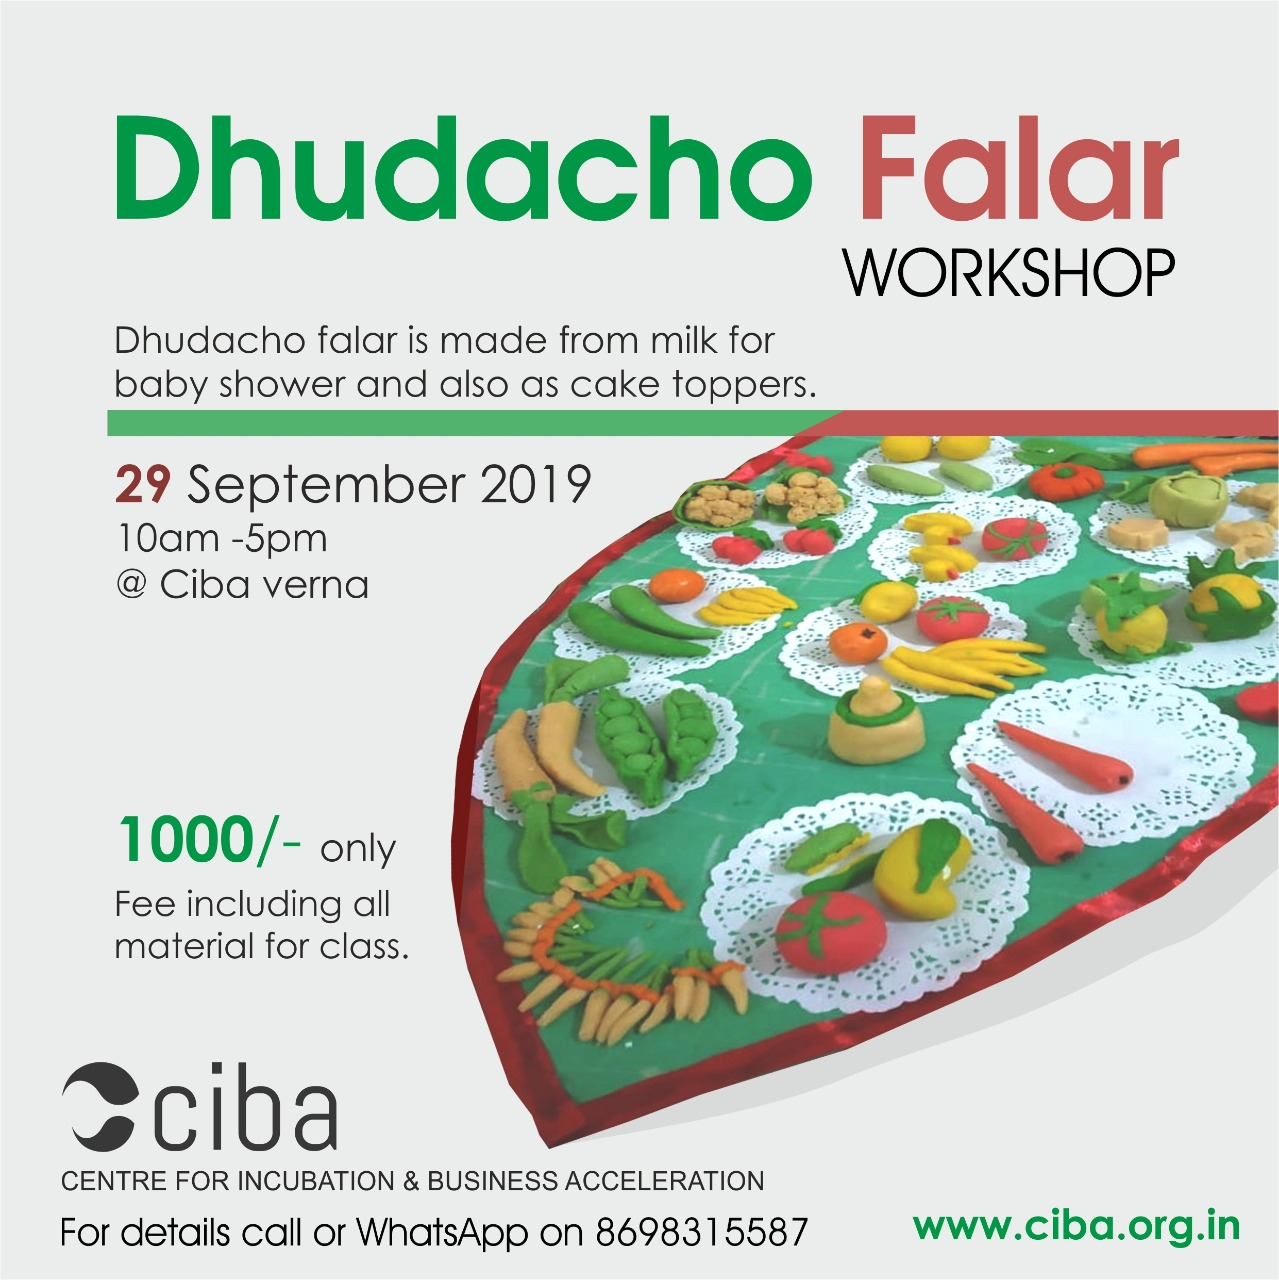 ciba-Dhudacho Falar Workshop